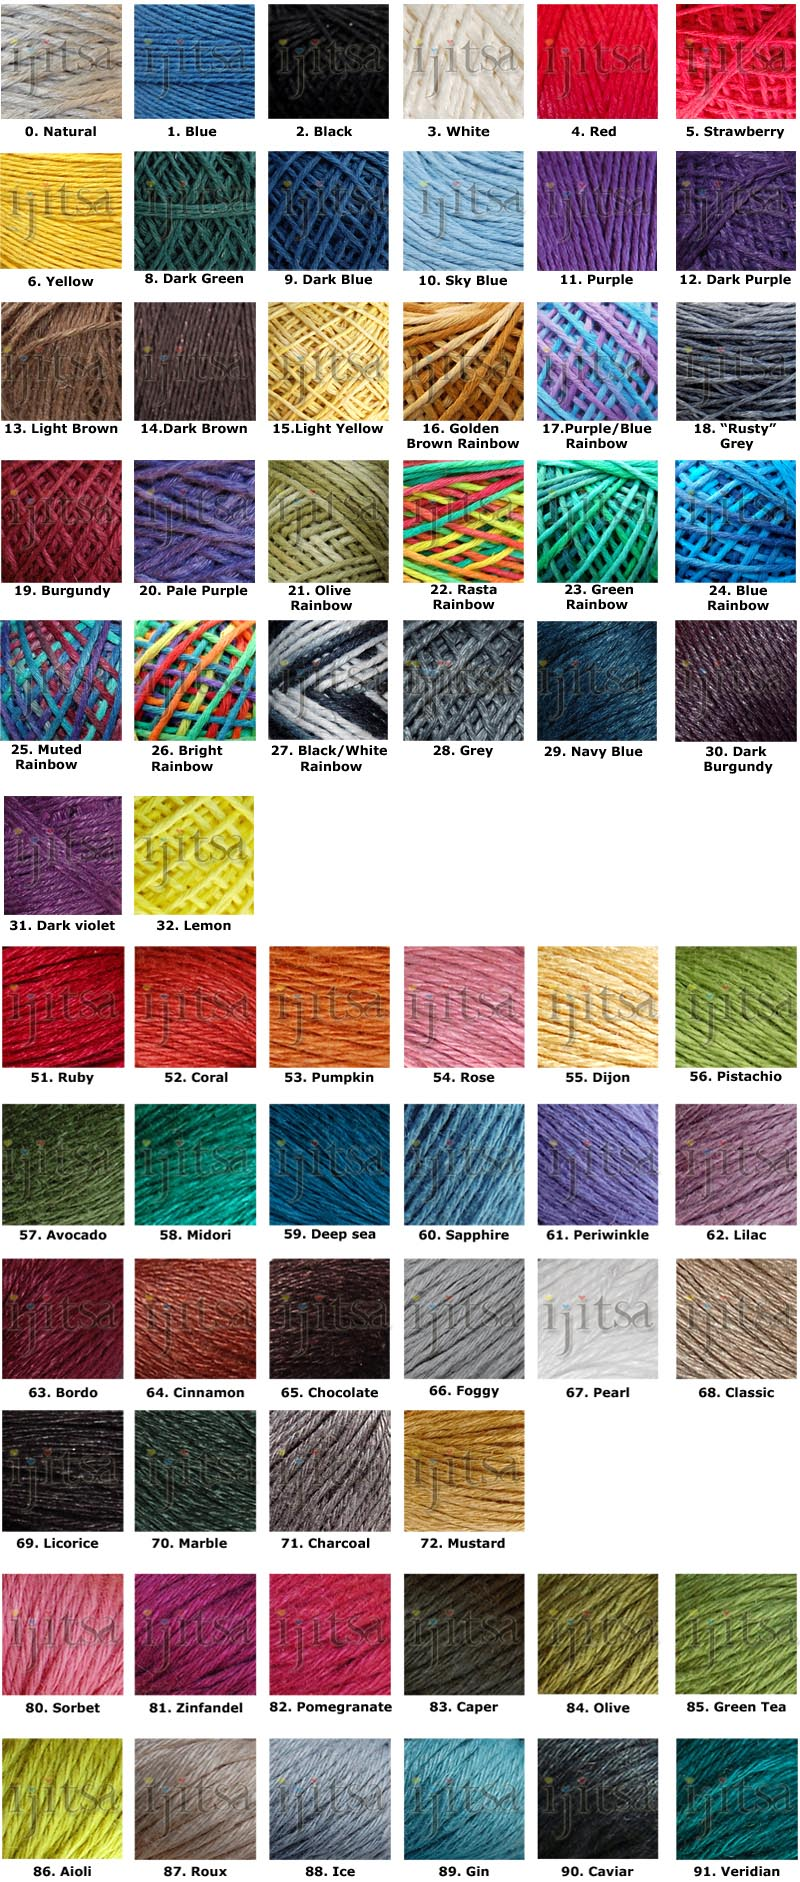 Color of Hemp, Natural, Blue Black, White, Red, Dark Red, Yellow, Light Green, Dark Green, Dark Blue, Sky Blue, Golder Brown, Dark Purple, Light Brown, Dark Brown, Light Yellow, Golden Brown Rainbow, Purple/Blue Rainbow, Rusty Gray, Burgundy, Light Purple, Olive Rainbow, Rasta Rainbow, Green Rainbow, Blue Rainbow, Muted Rainbow, Bright Rainbow, Black/White Rainbow, Gray, Navy Blue, Dark Burgundy, Ruby, Coral, Pumpkin, Rose, Dijon, Pistachio, Avocado, Midori, Deep Sea, Sapphire, Periwinkle, Lilac, Bordo, Cinnamon, Chocolate, Foggy, Pearl, Classic, Licorice, Marble, Charcoal